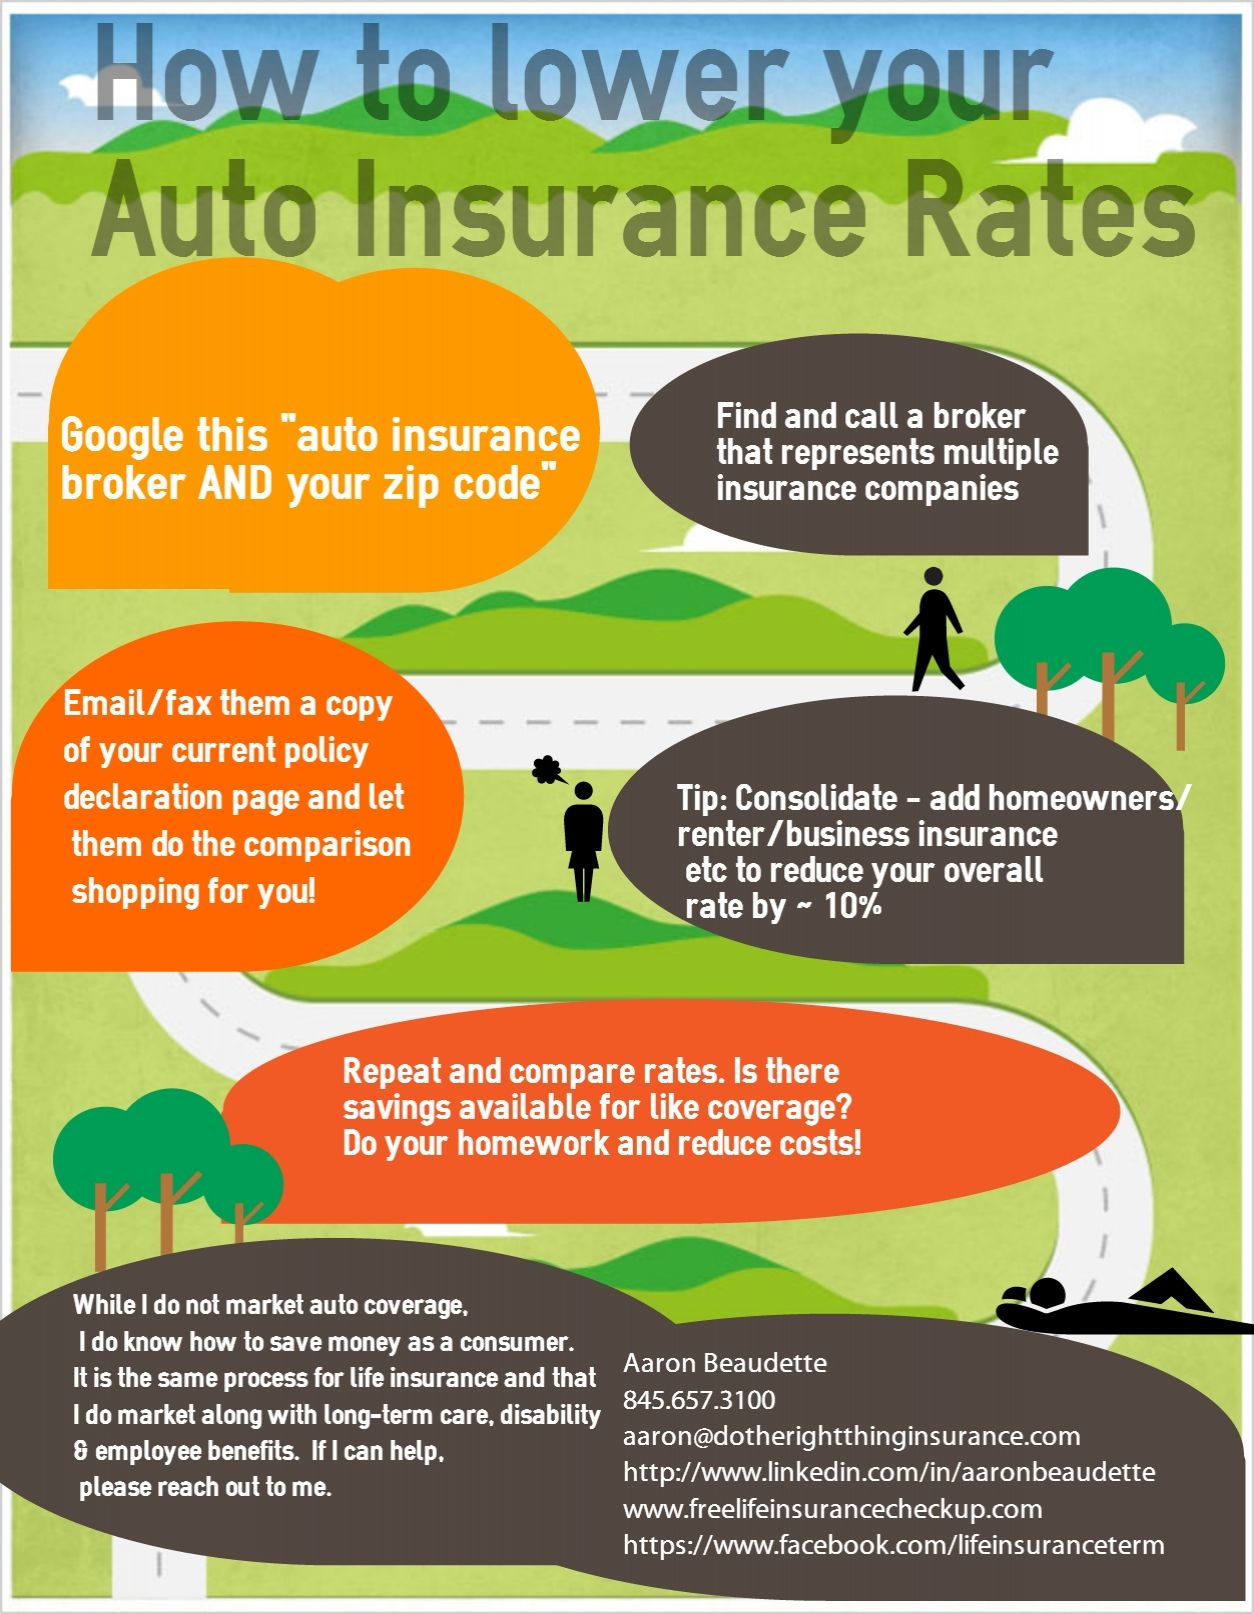 Consumer help how to reduce your auto insurance rates